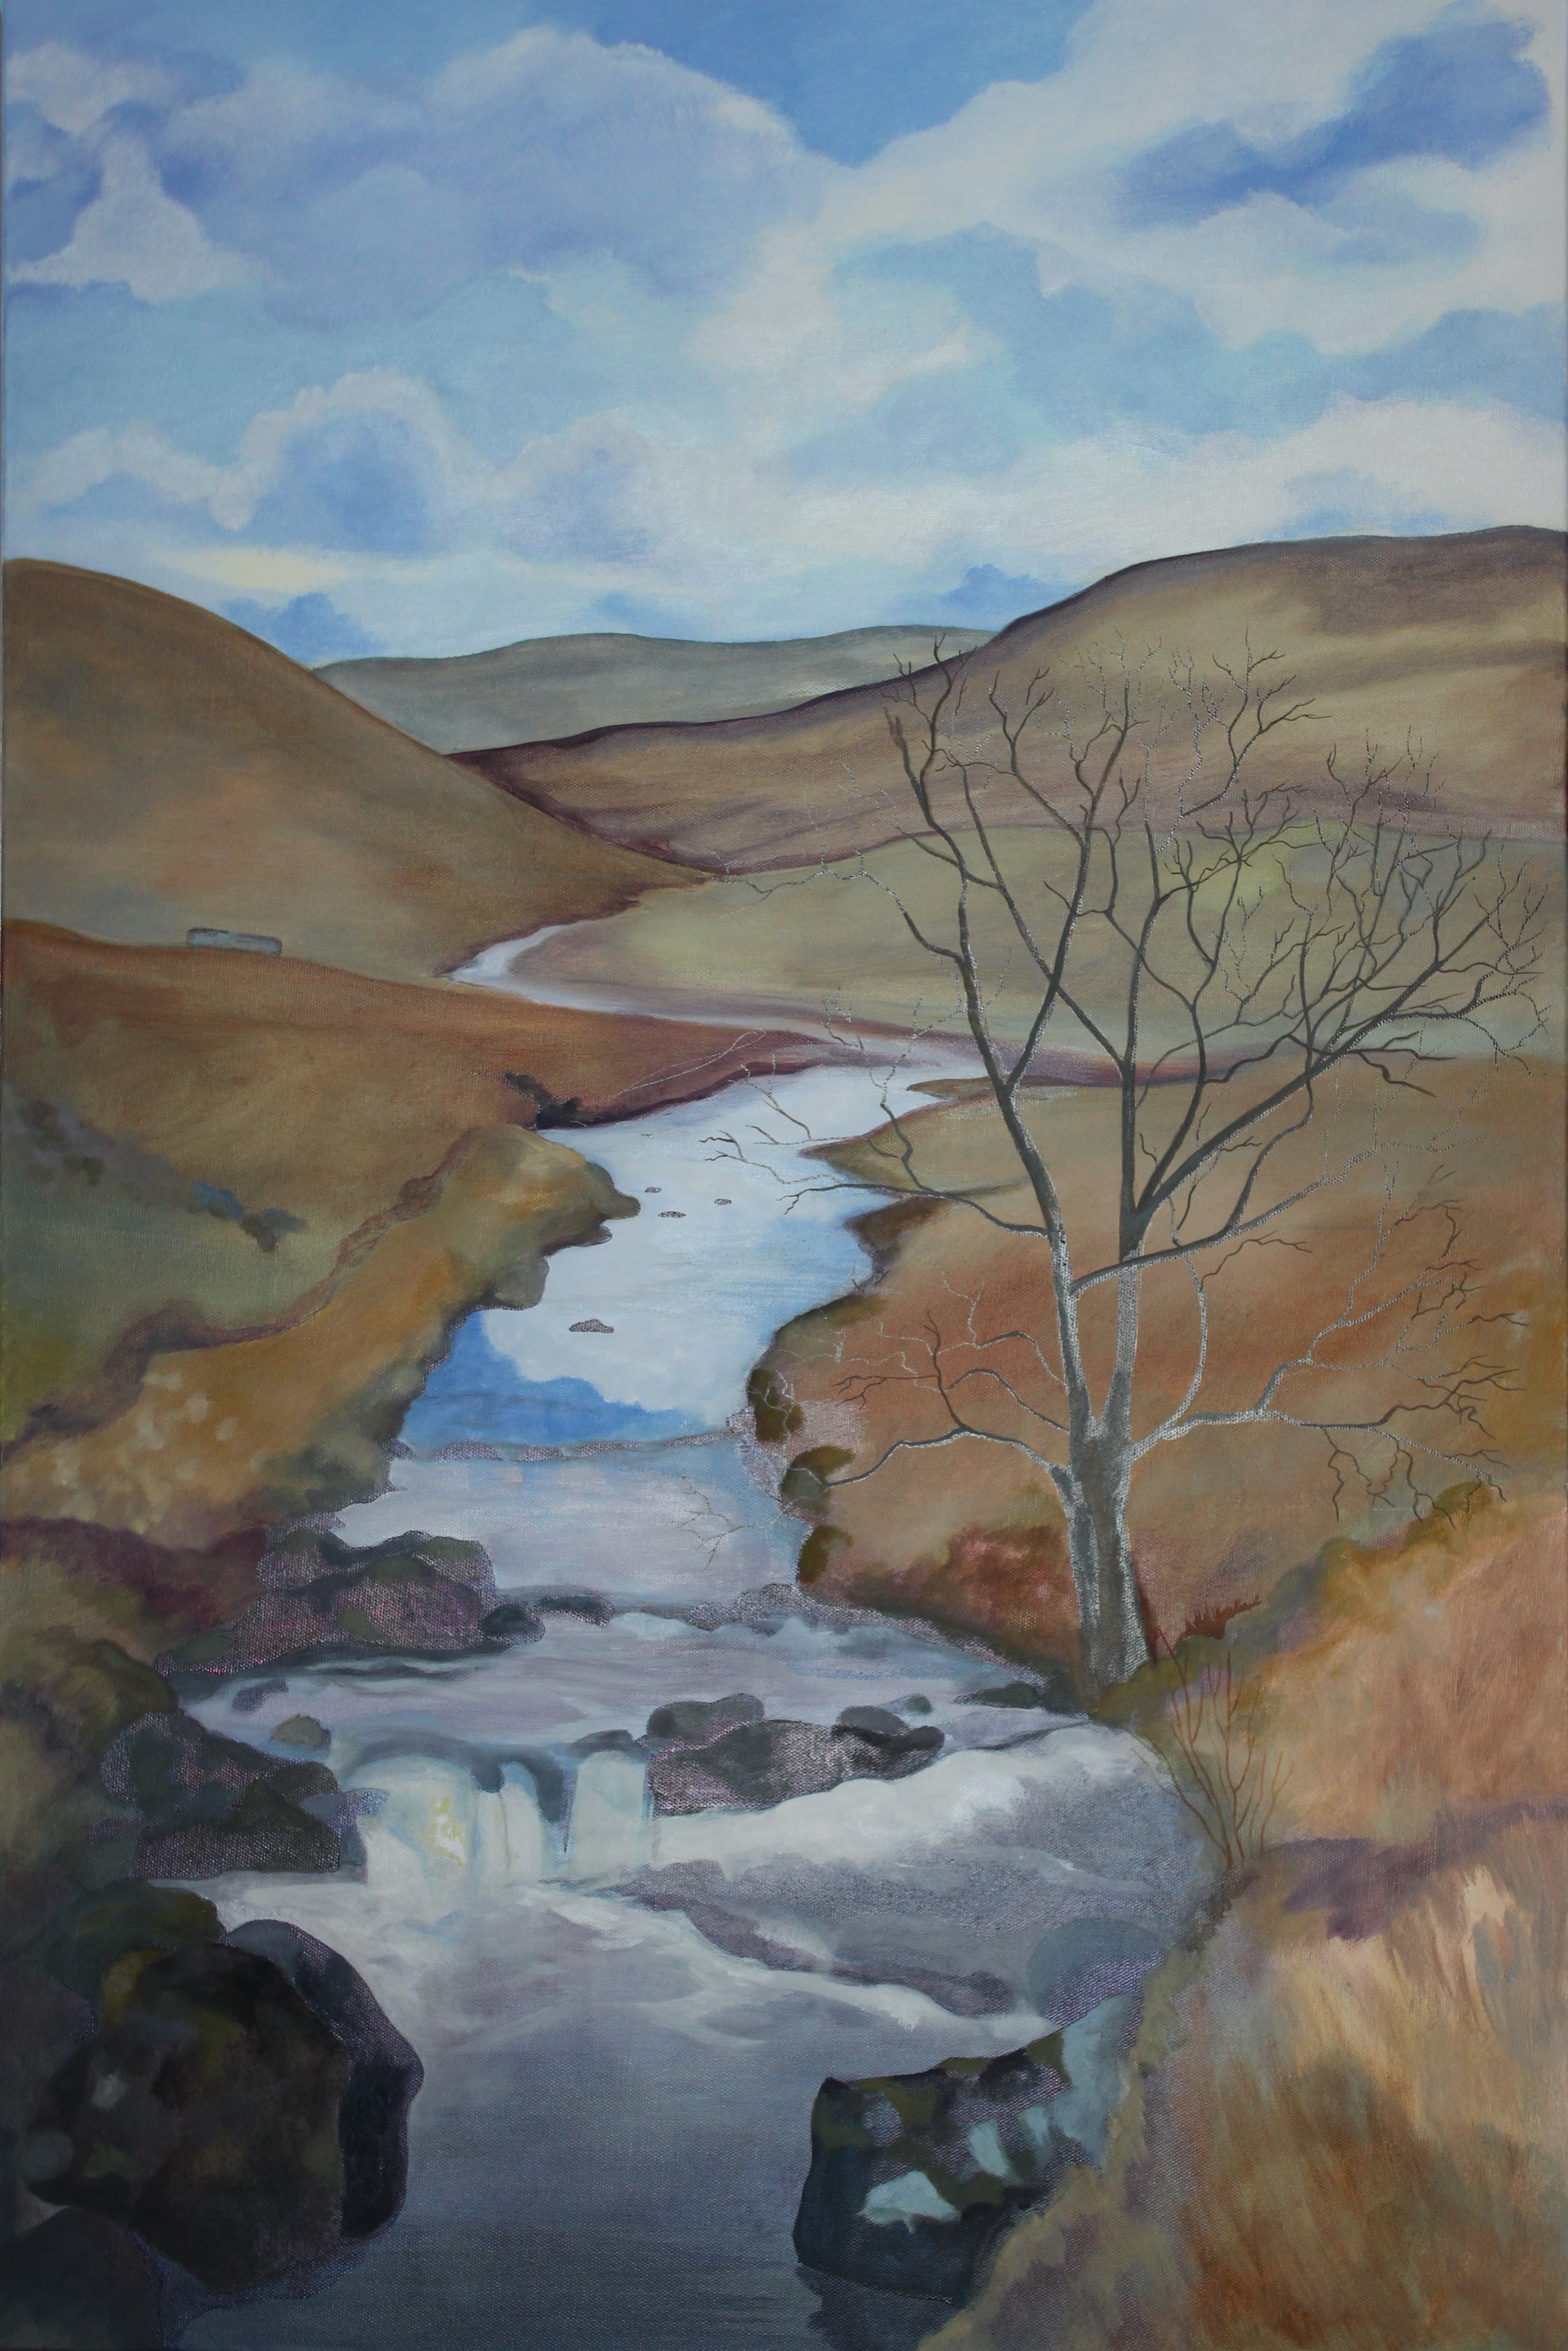 Upper Coquet, between Windyhaugh and Carshope